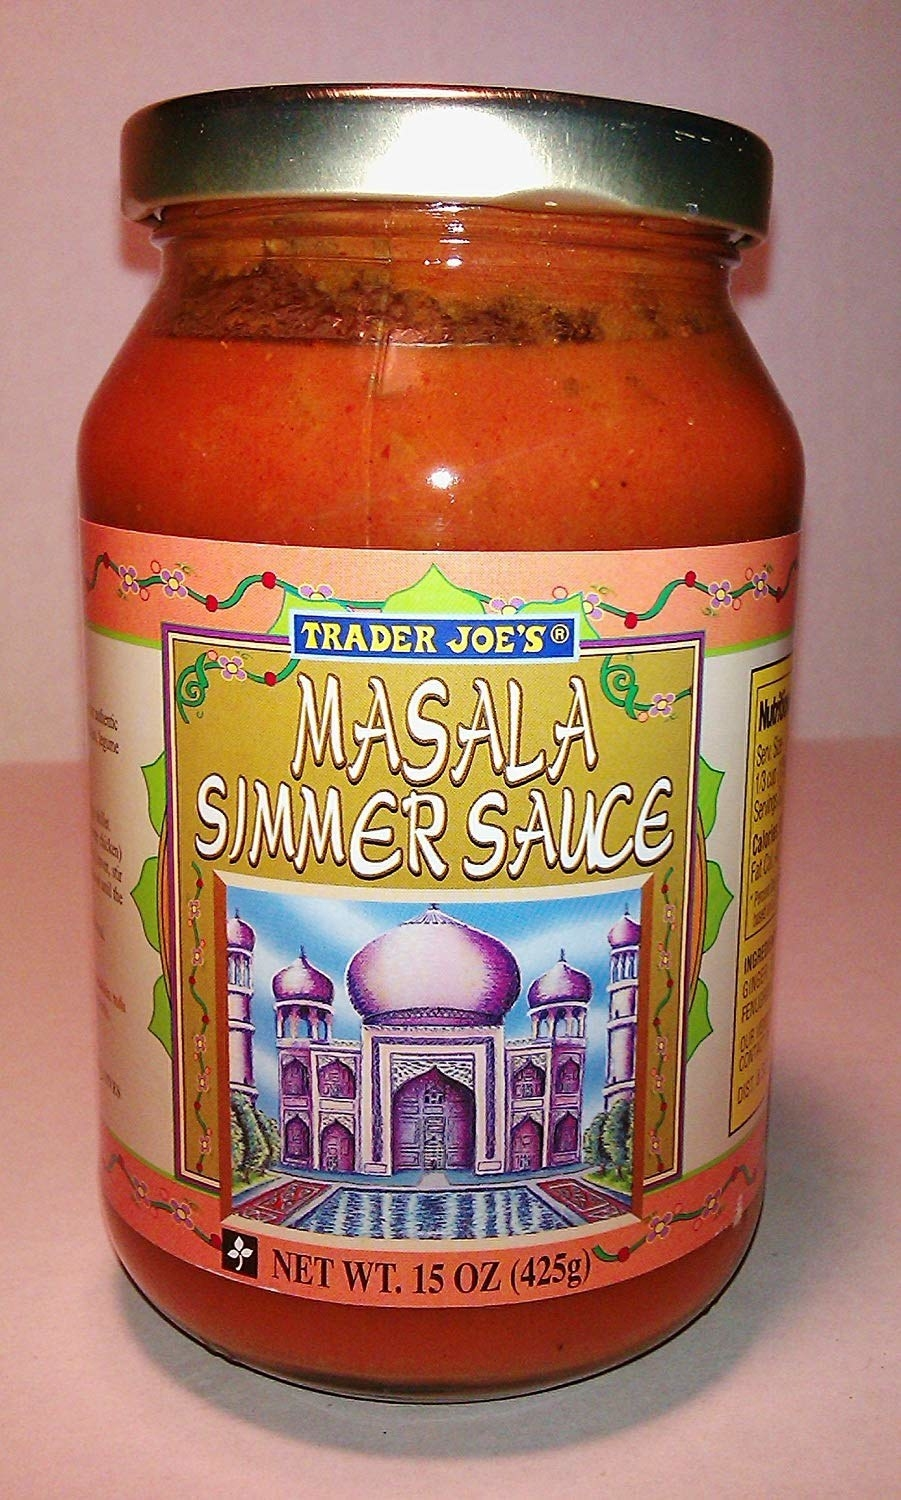 Jar of Trader Joe's Marsala Simmer Sauce